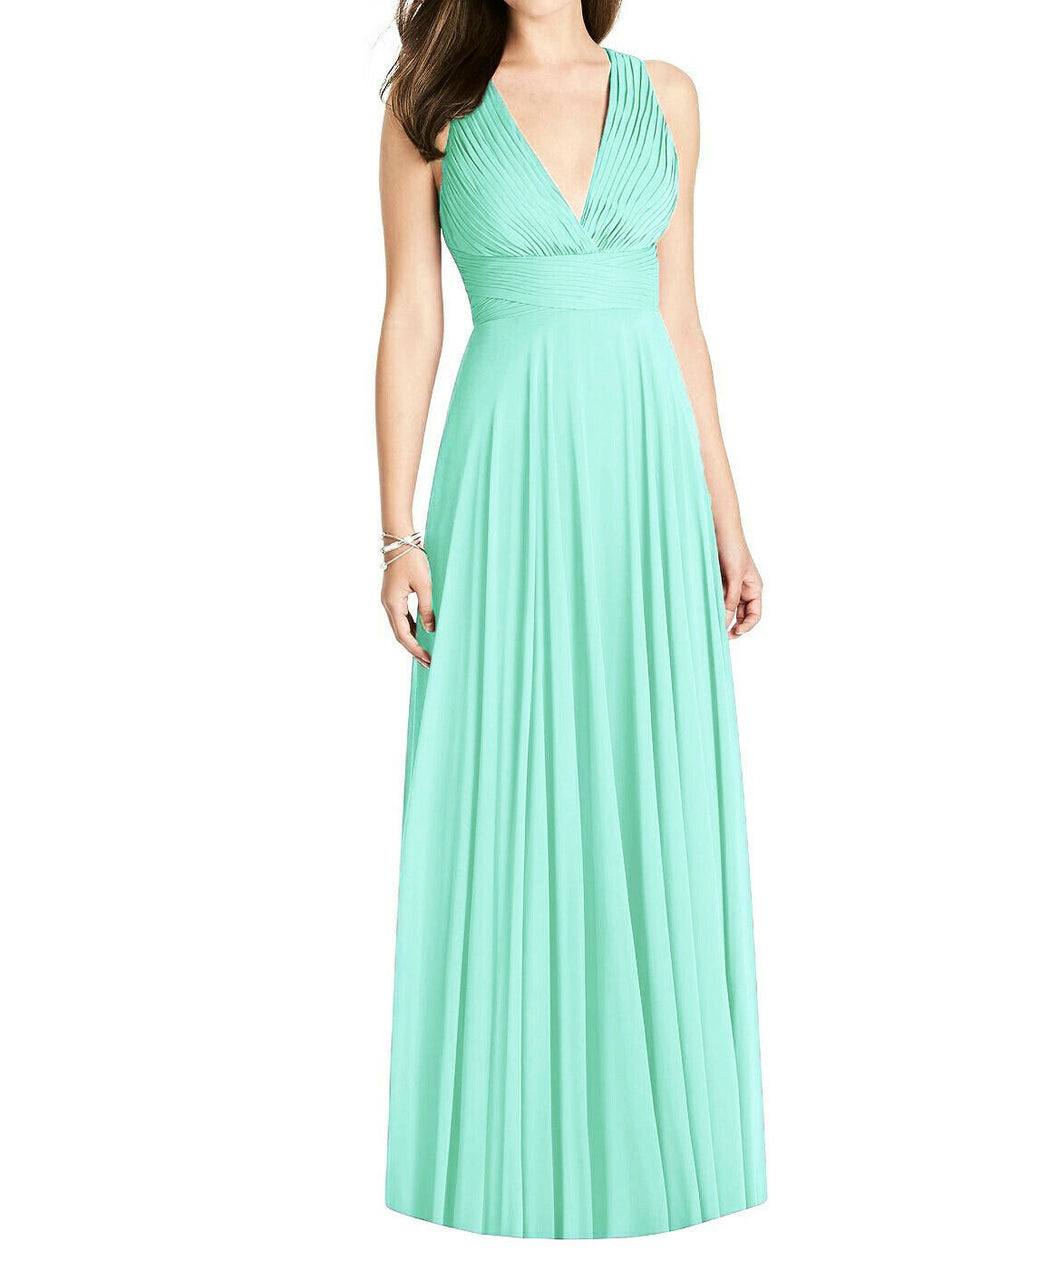 Tiffany pale mint  green pleat detail v neck long bridesmaid wedding dress loulous bridal boutique ltd uk